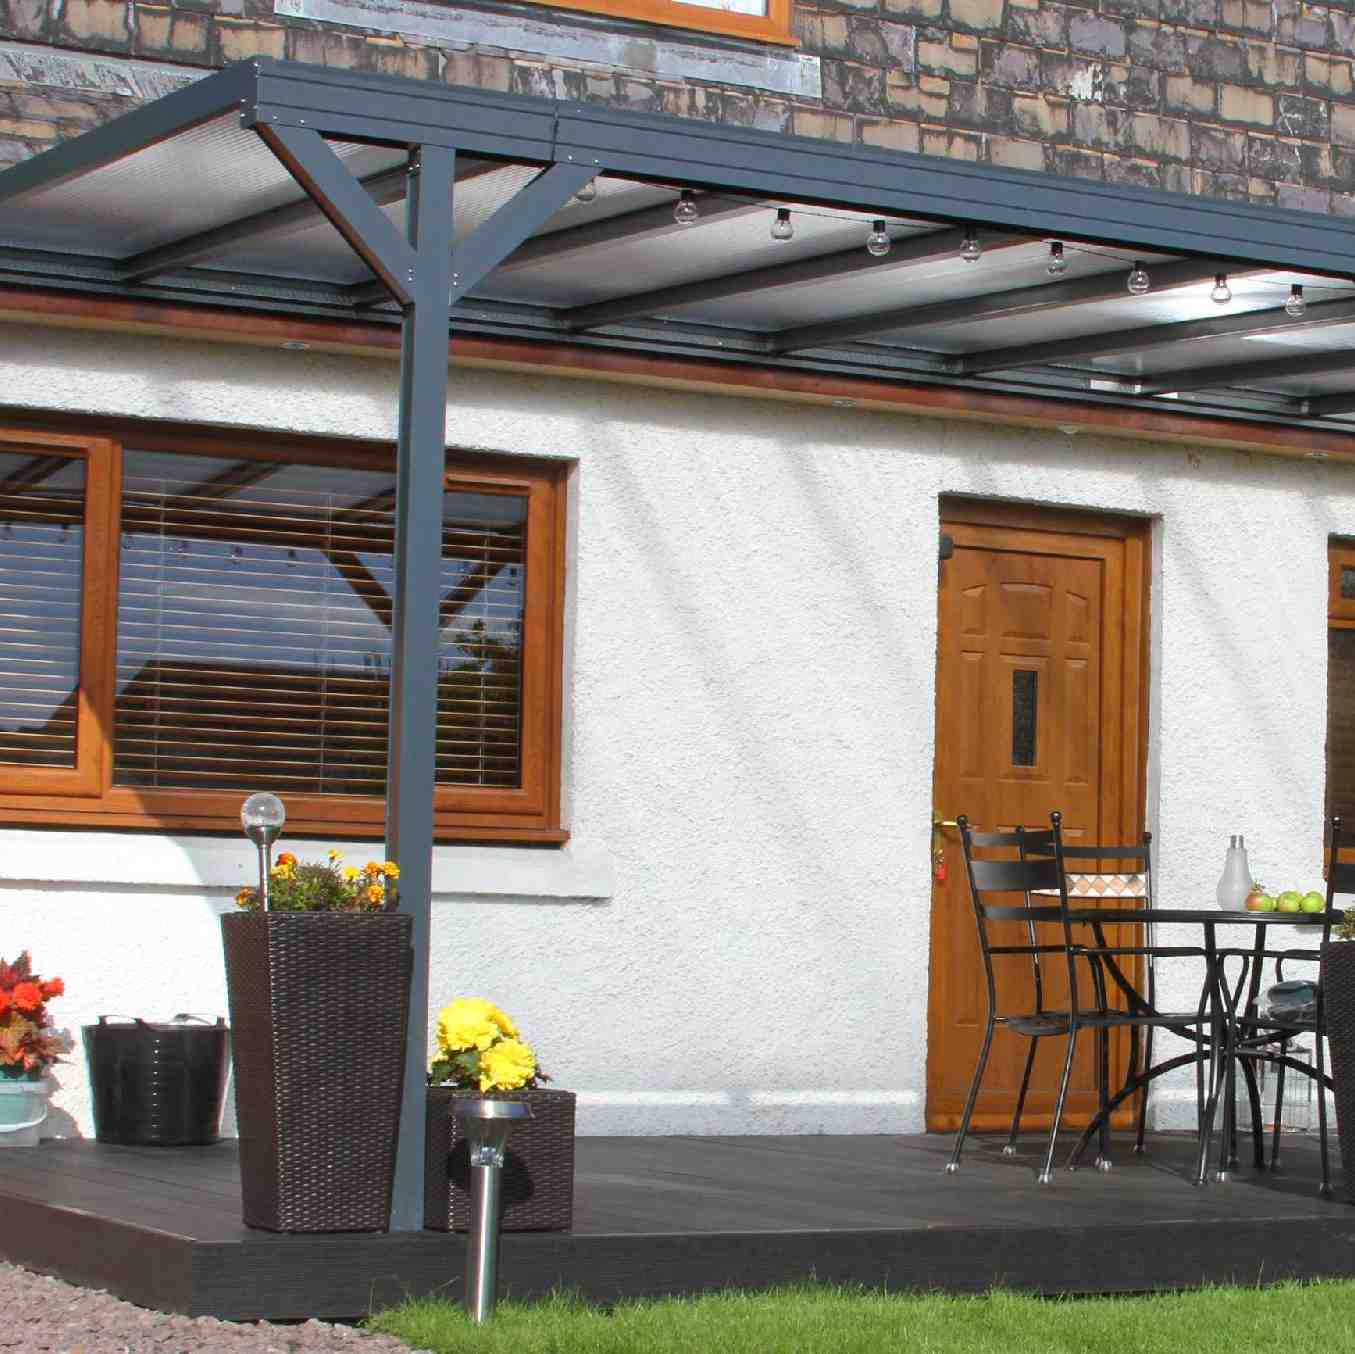 Omega Verandah, Anthracite Grey, 16mm Polycarbonate Glazing - 2.1m (W) x 4.0m (P), (2) Supporting Posts